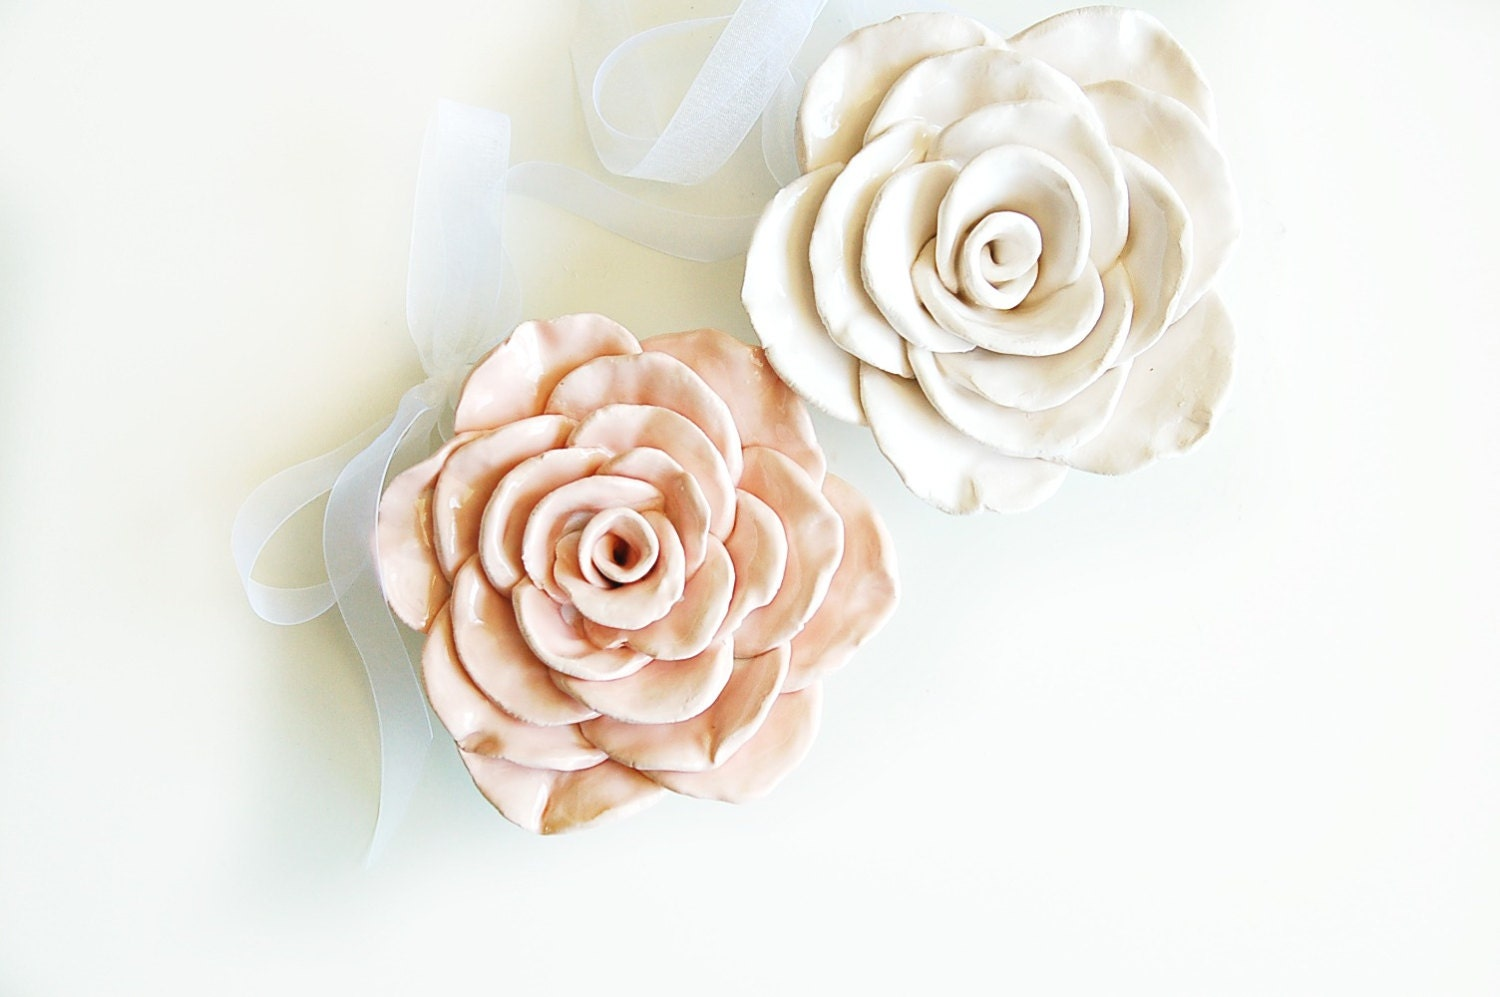 Home Decor Wall Flower / Pink Ceramic Shabby Chic Rose